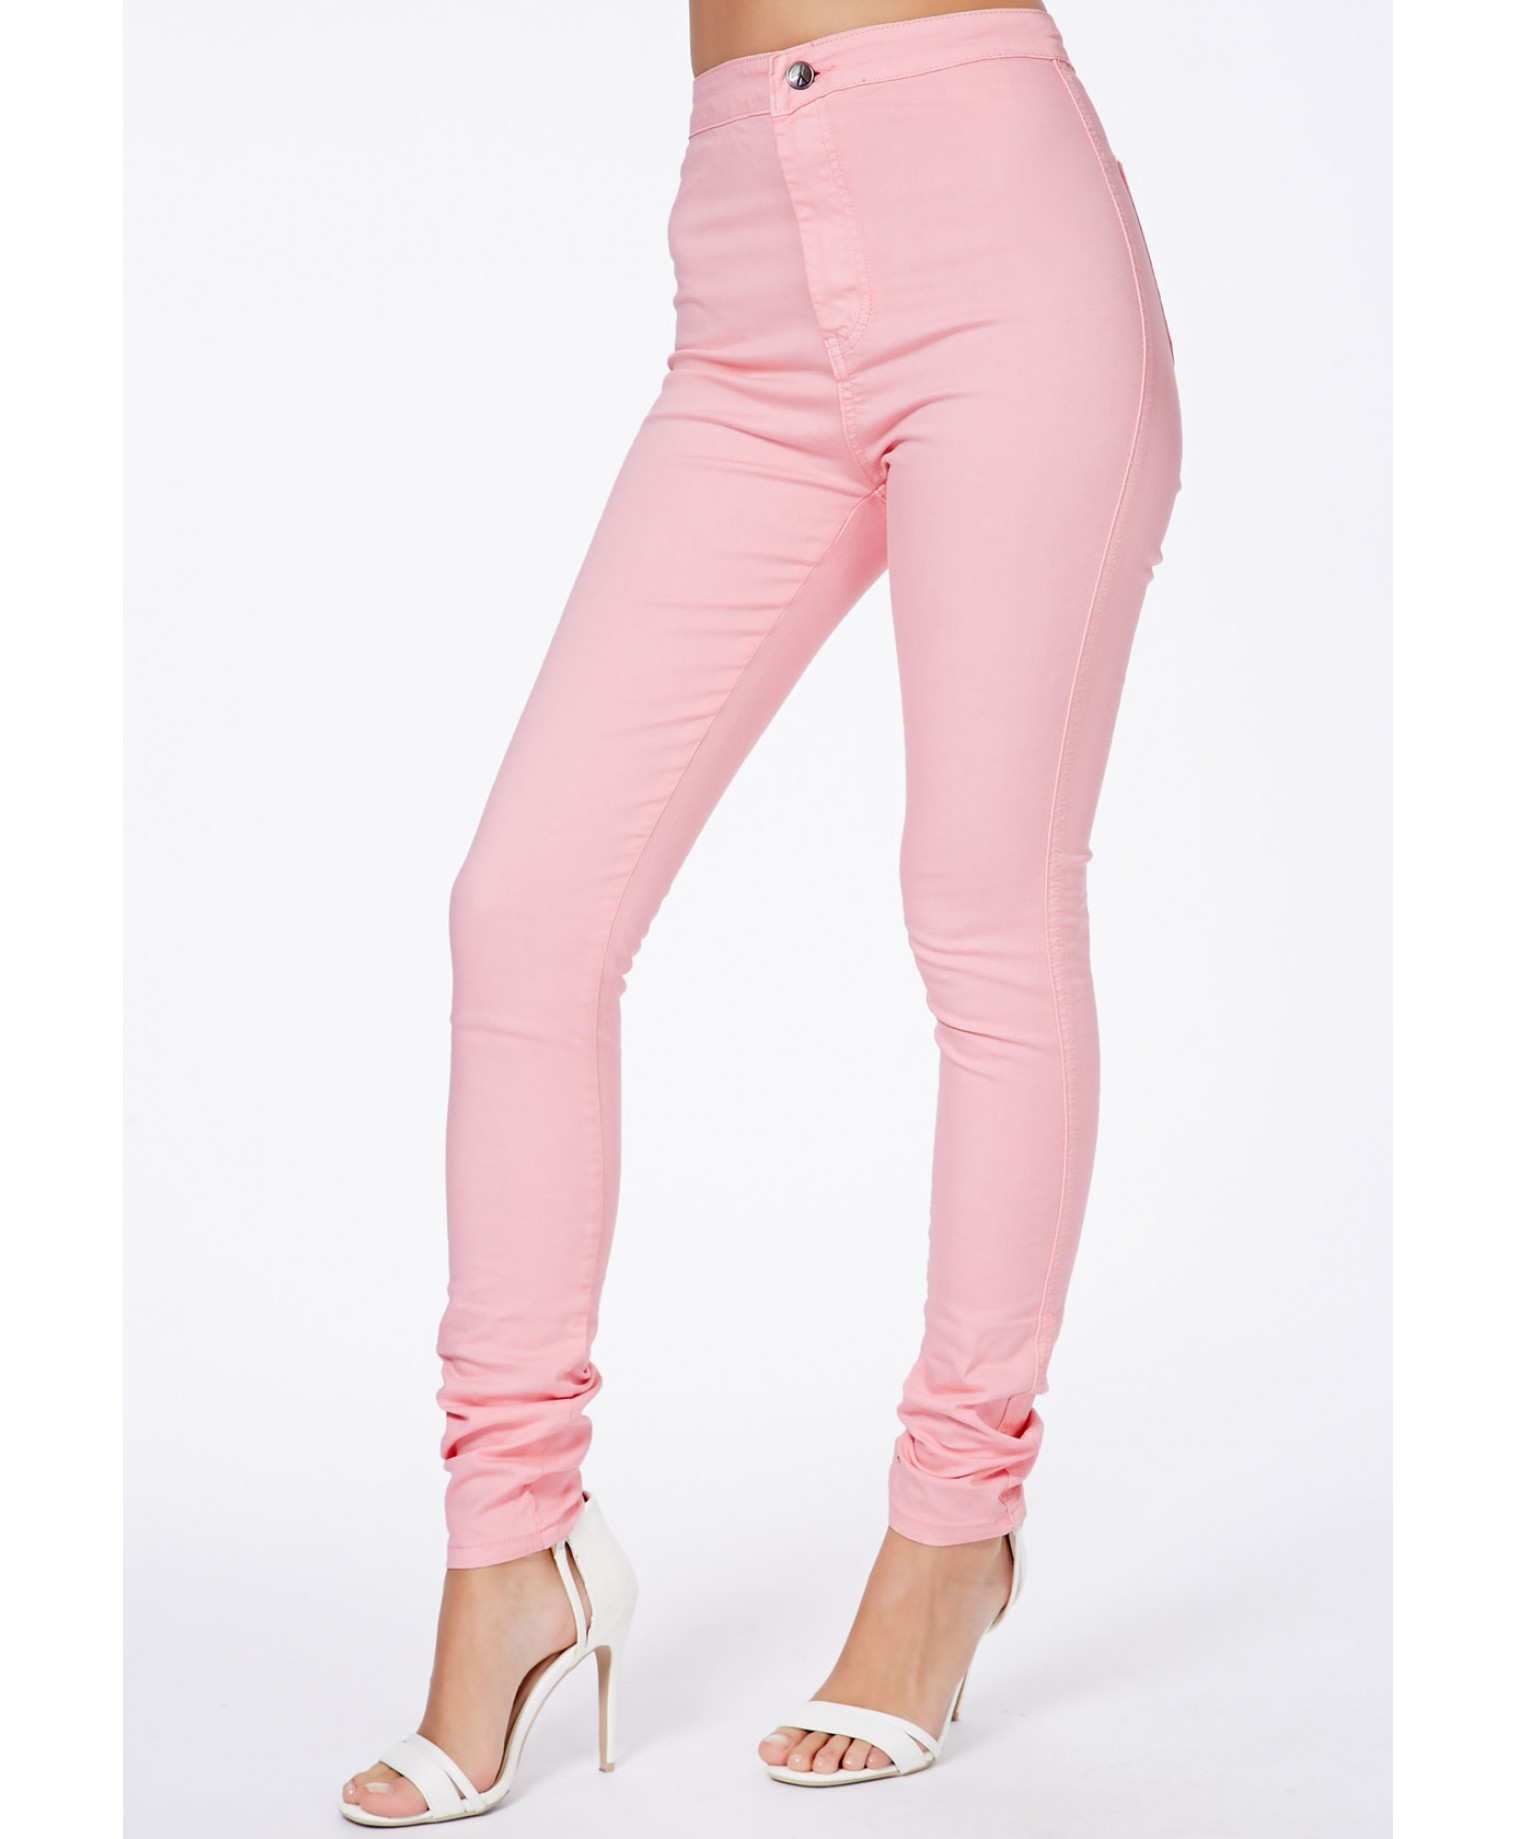 Shop for light pink skinny jeans online at Target. Free shipping on purchases over $35 and save 5% every day with your Target REDcard.